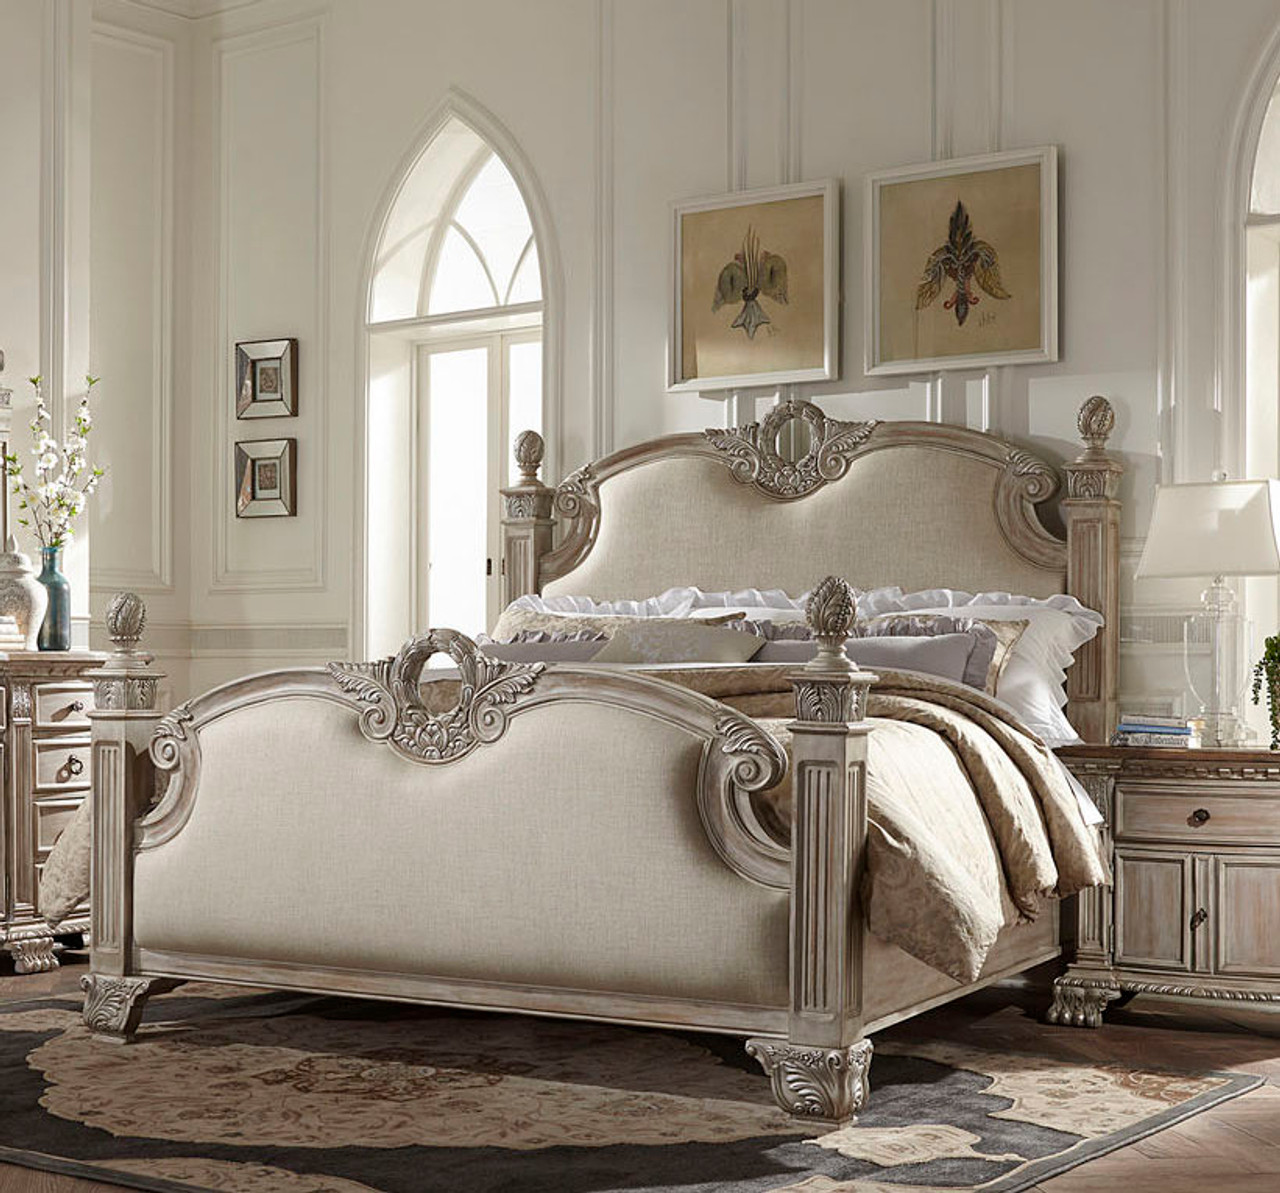 Orleans White Washed Weathered Brown Bed